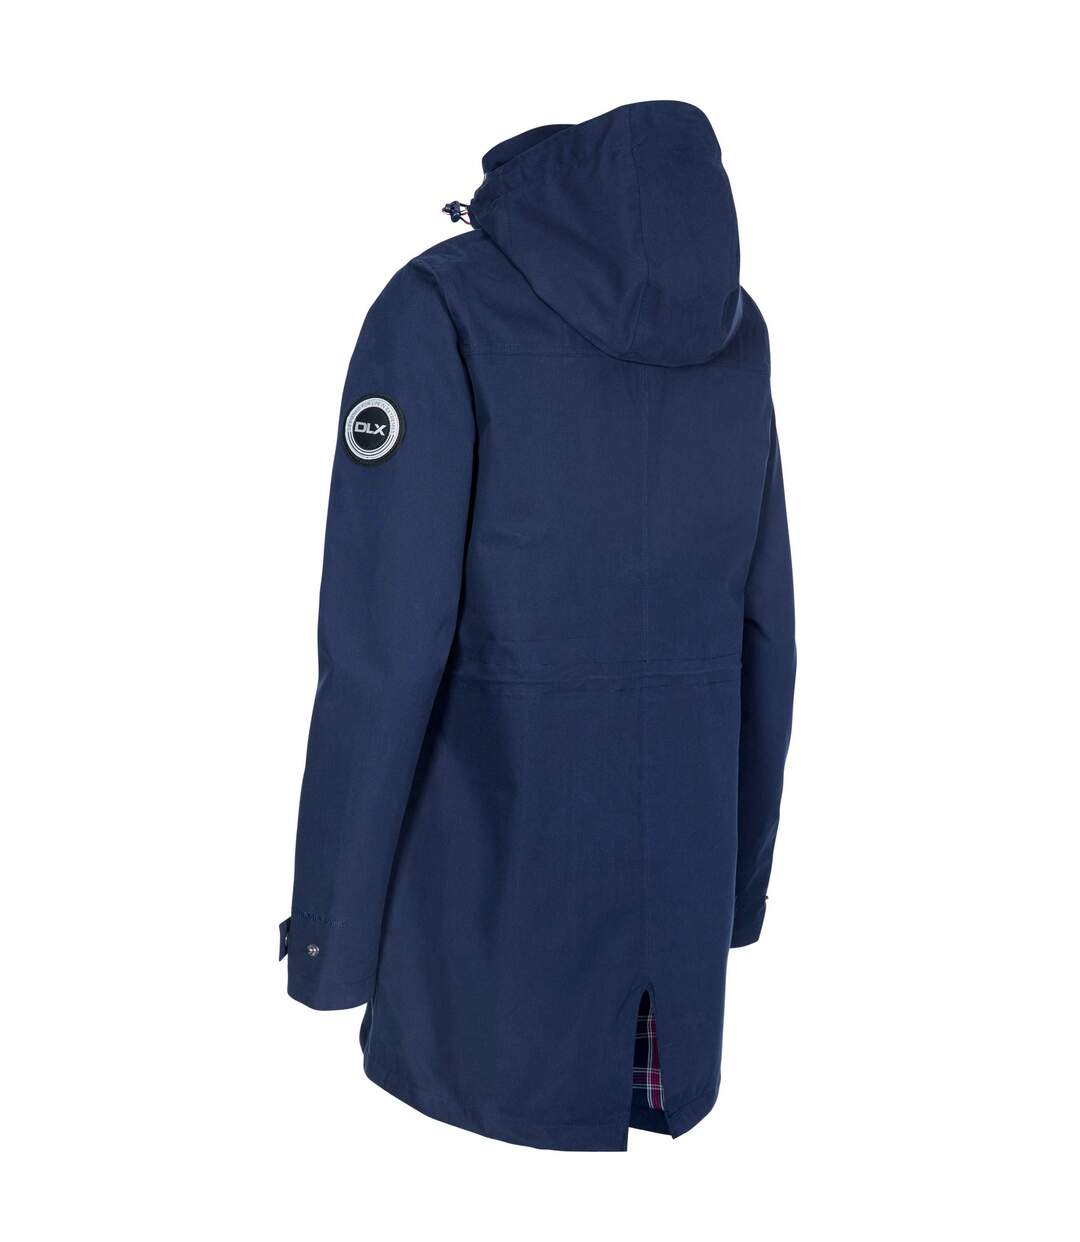 Trespass Womens/Ladies Henriette Waterproof DLX Jacket (Navy) - UTTP4652